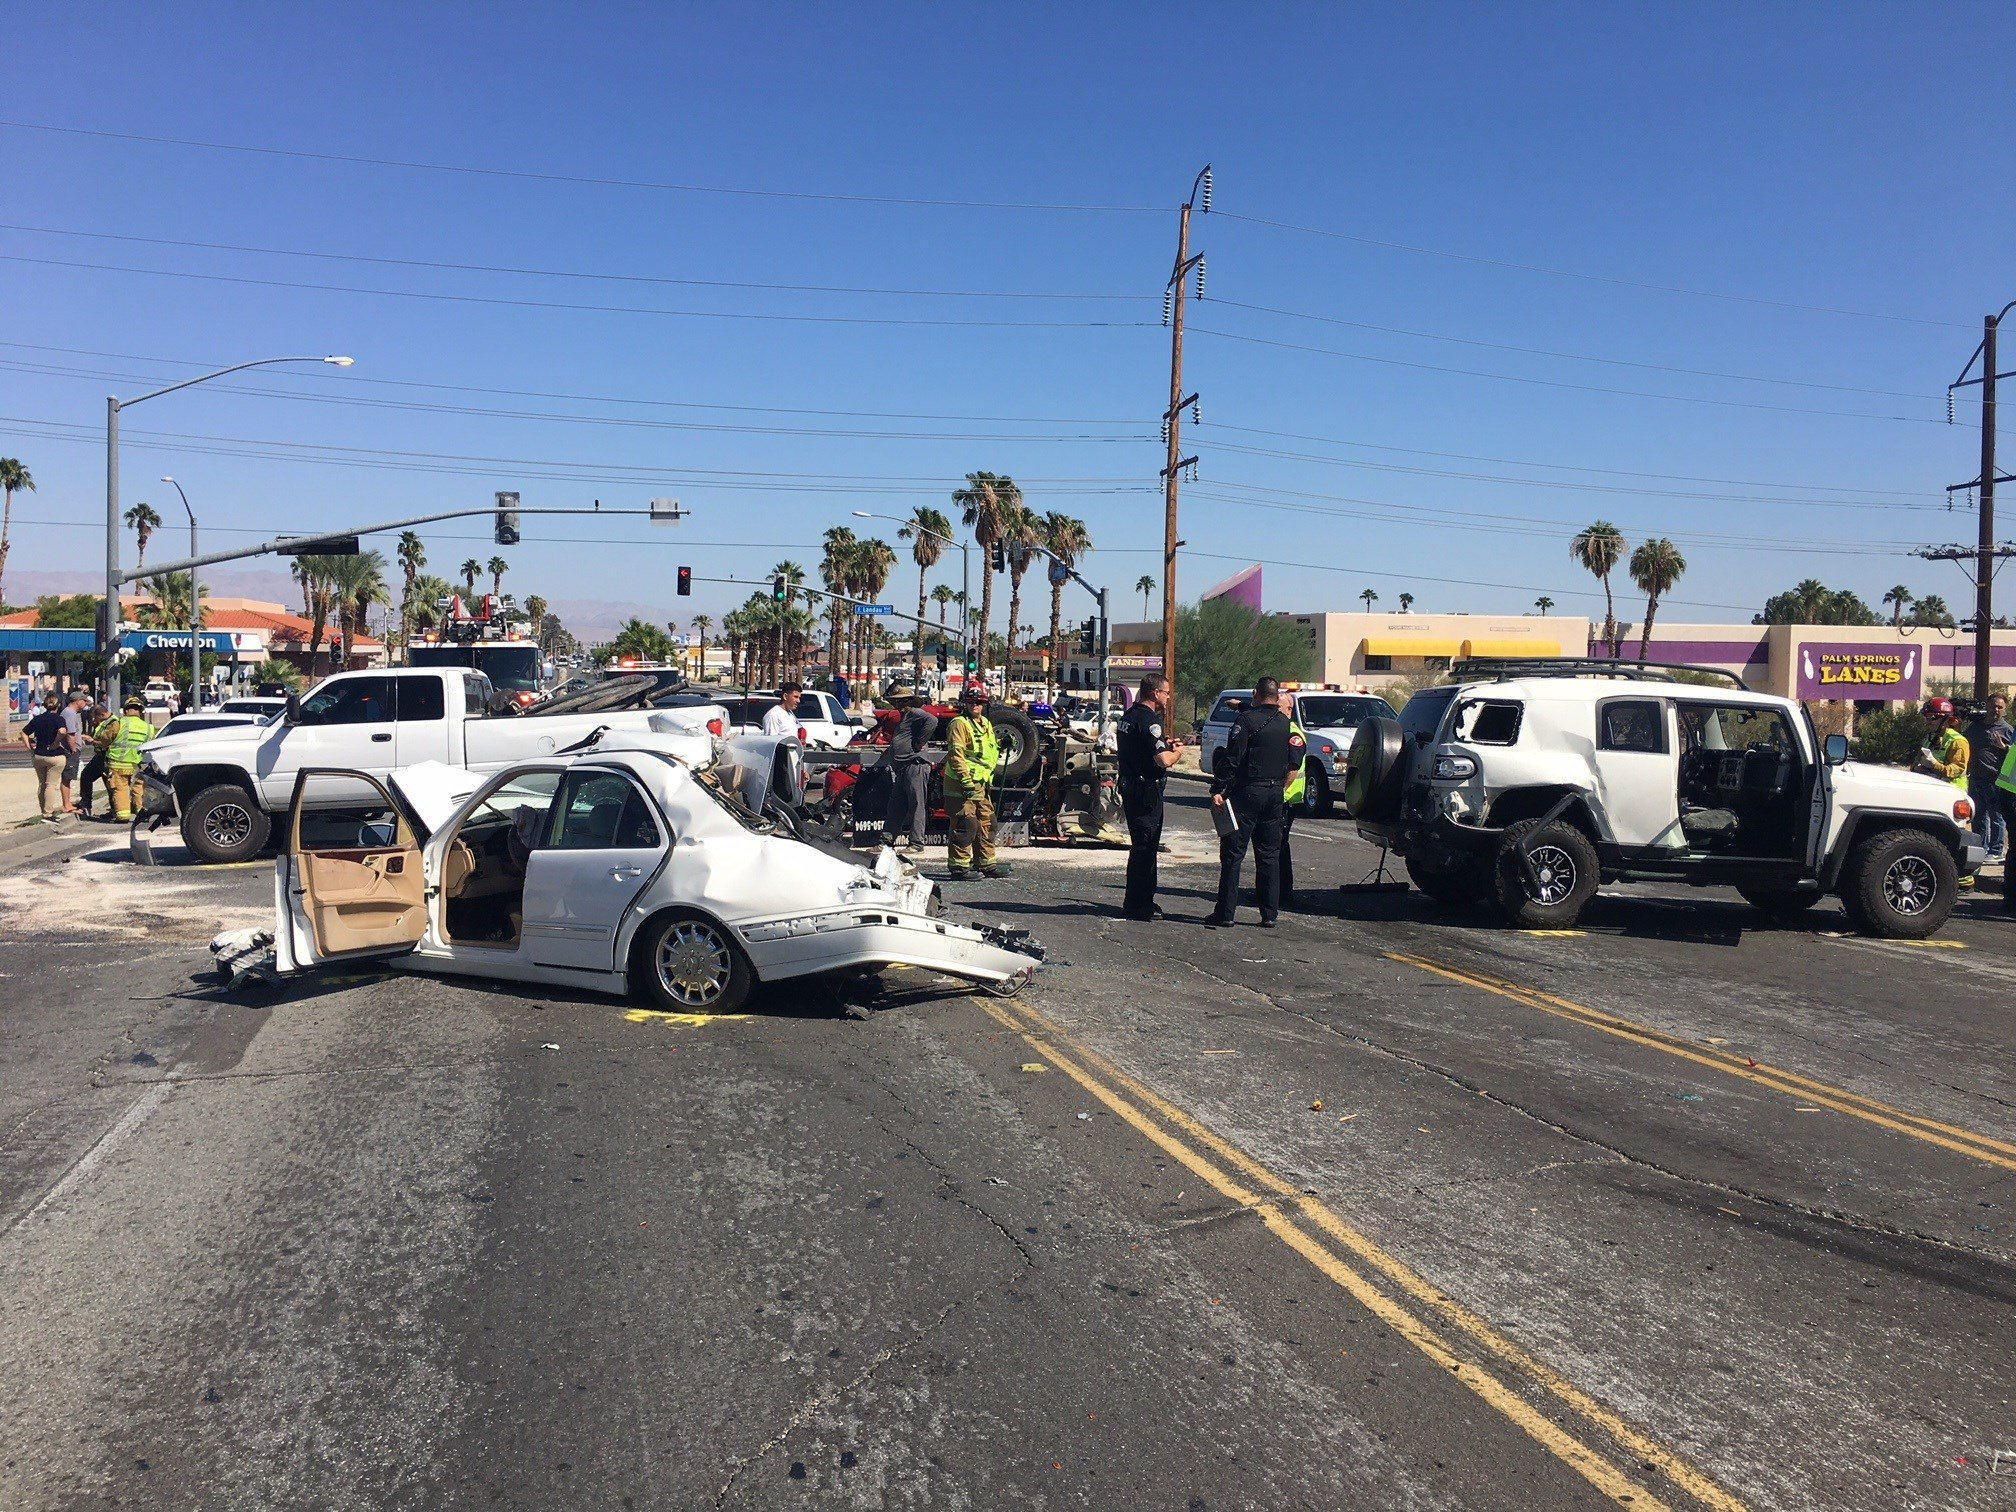 Authorities in Palm Springs have closed a portion of Ramon Road after a multiple vehicle collision.